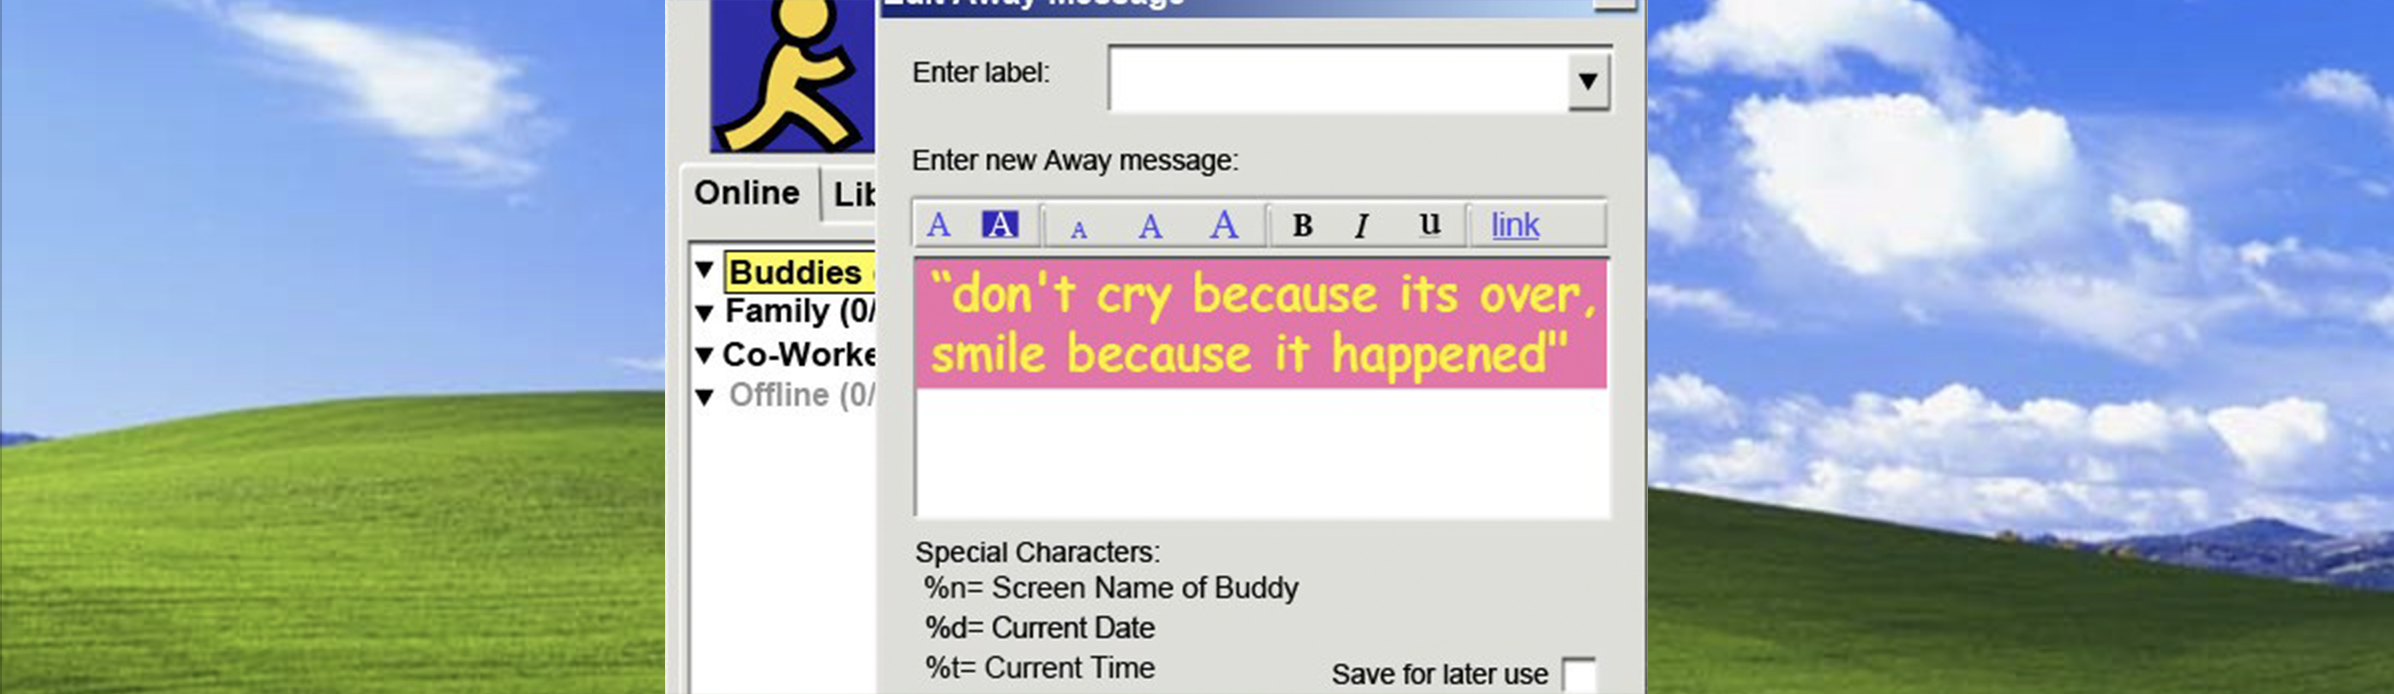 AOL Instant Messenger Made Social Media What It Is Today